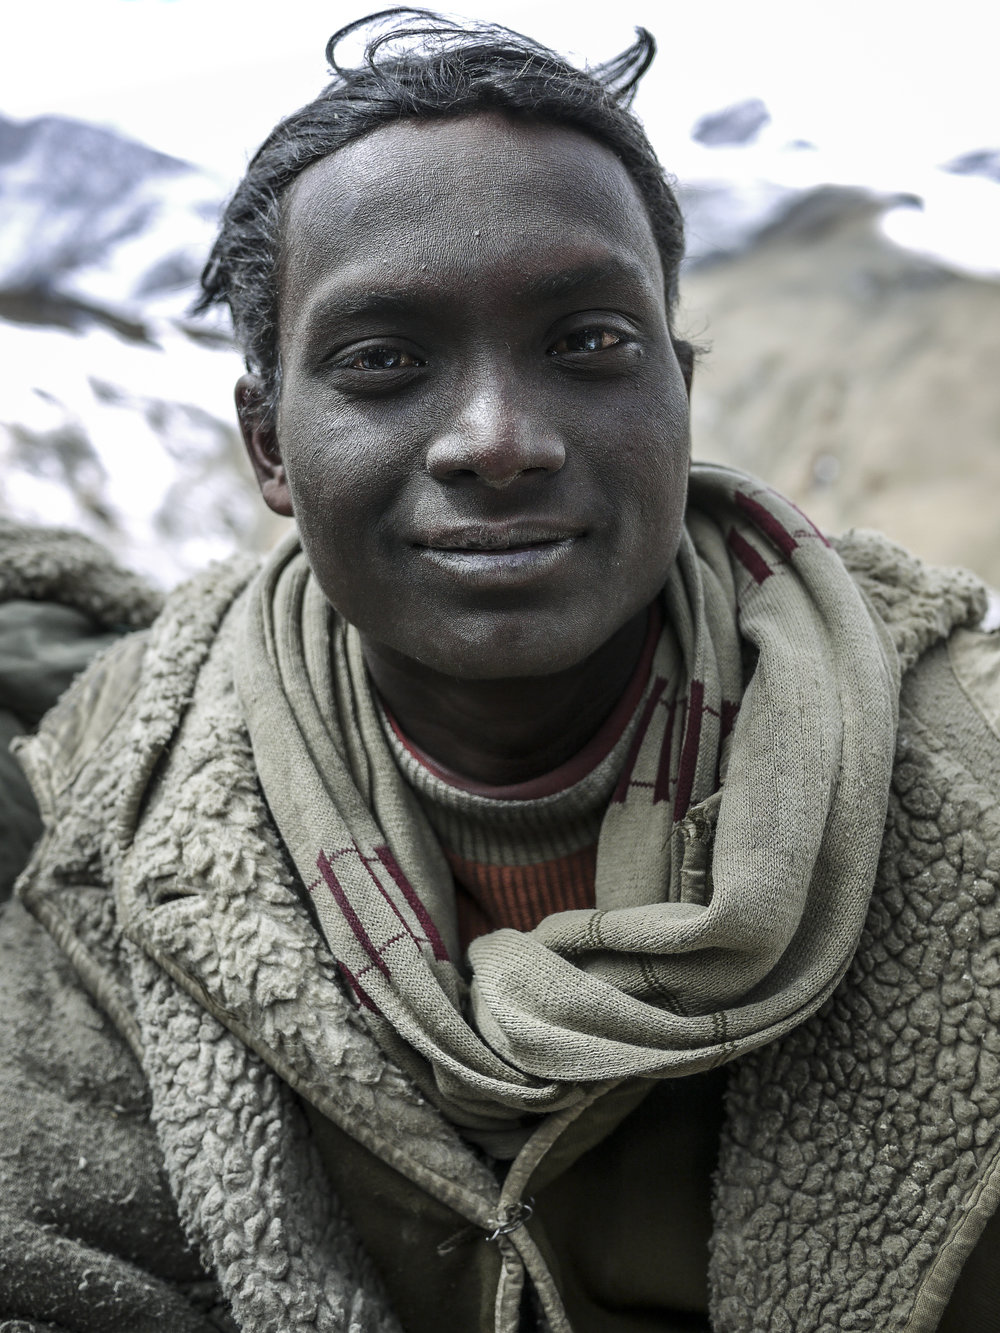 A young Bihari man with unusual coloured eyes. The effects of the high-altitude conditions are apparent on his face.